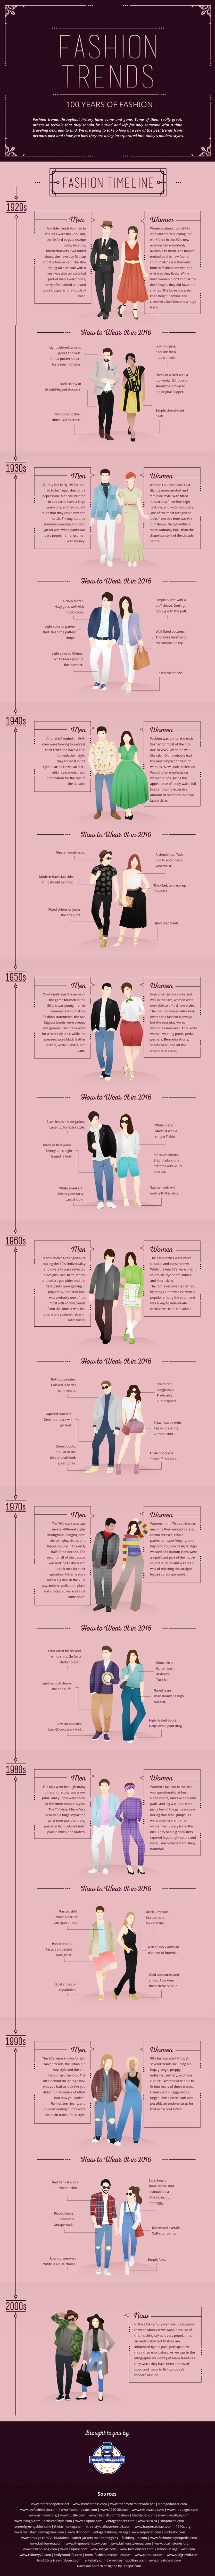 How to Wear the Fashion Trends through the Decades Infographic